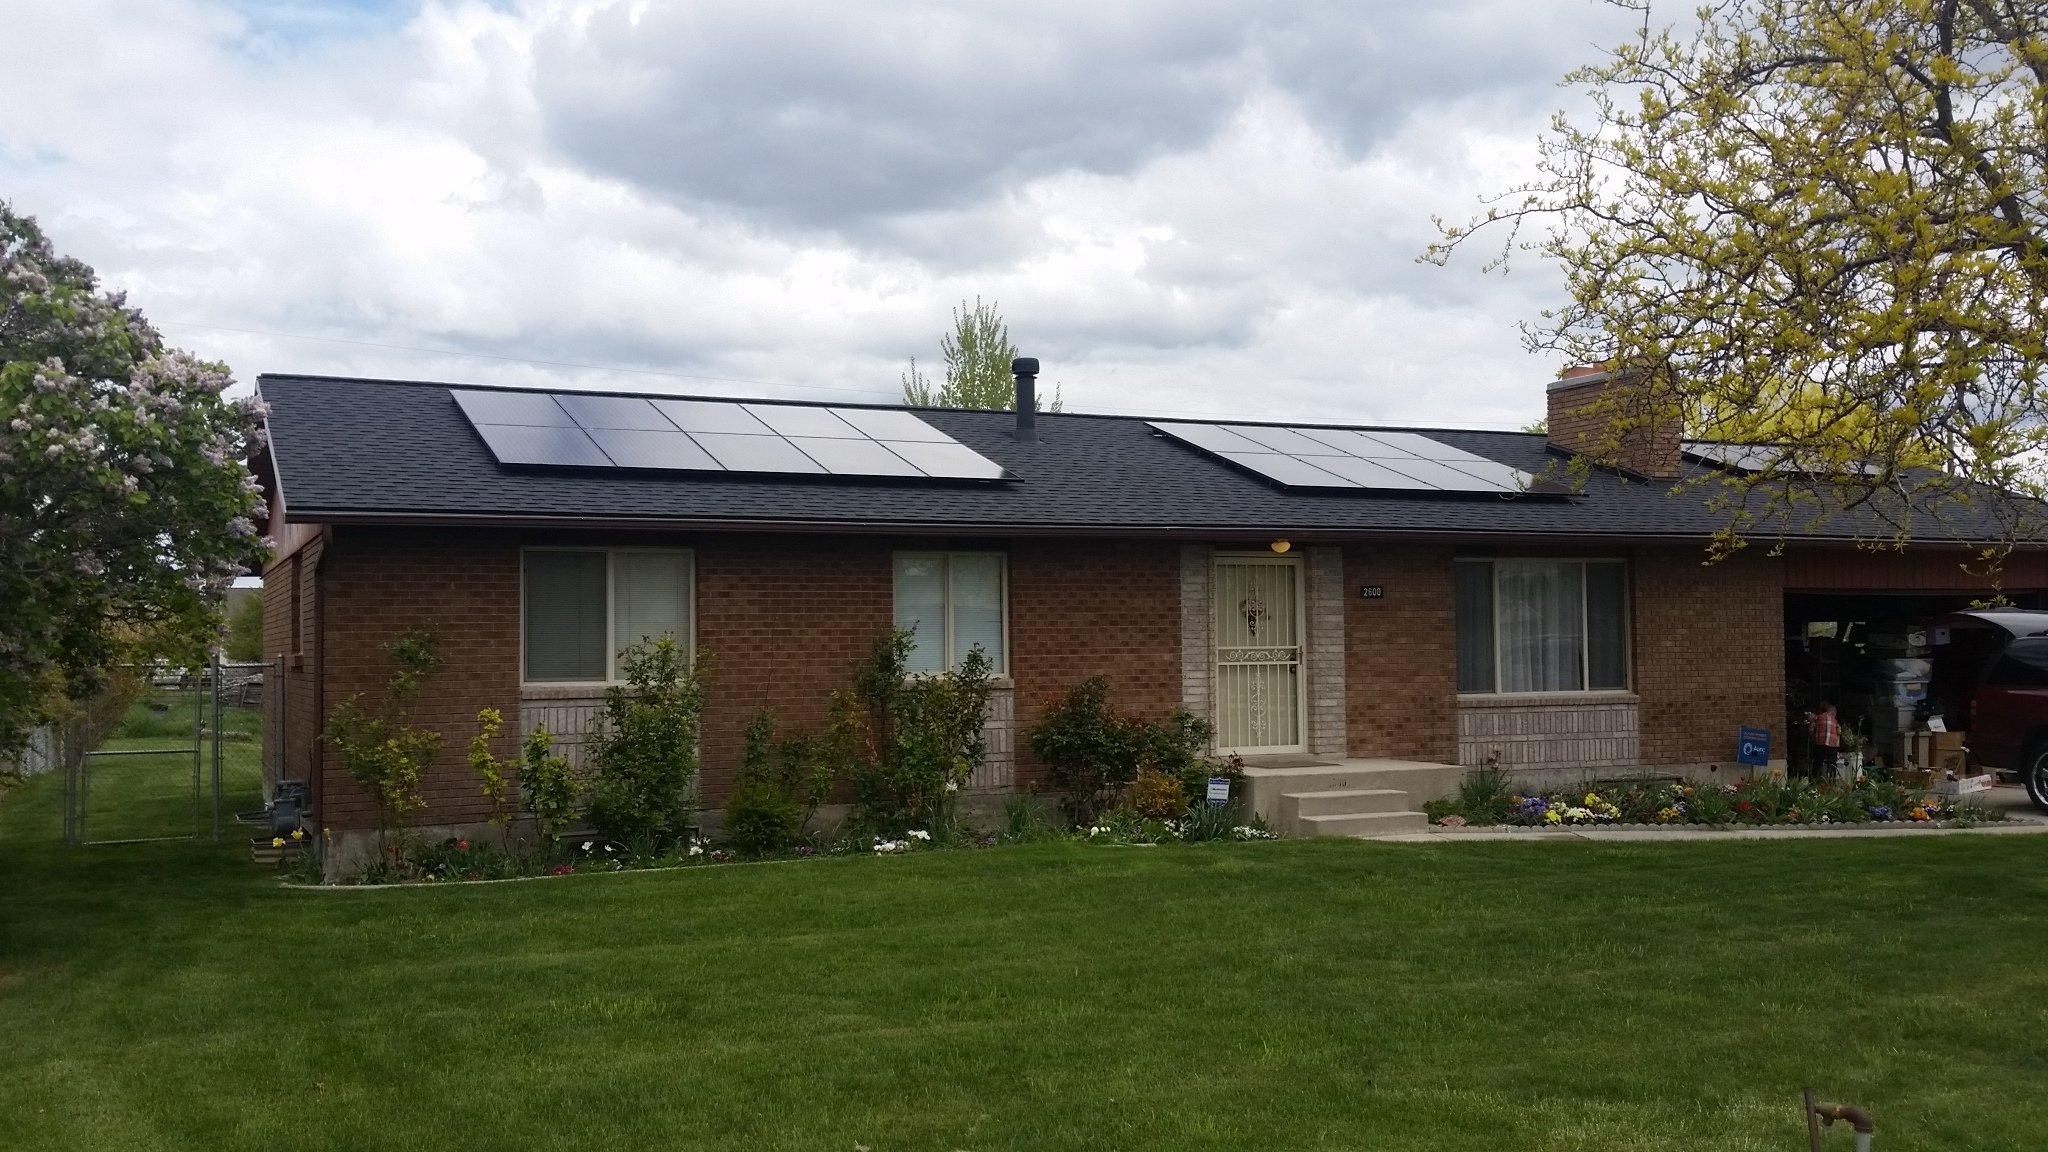 21 panels installed 6kW generated per month  $81.32 saved per month